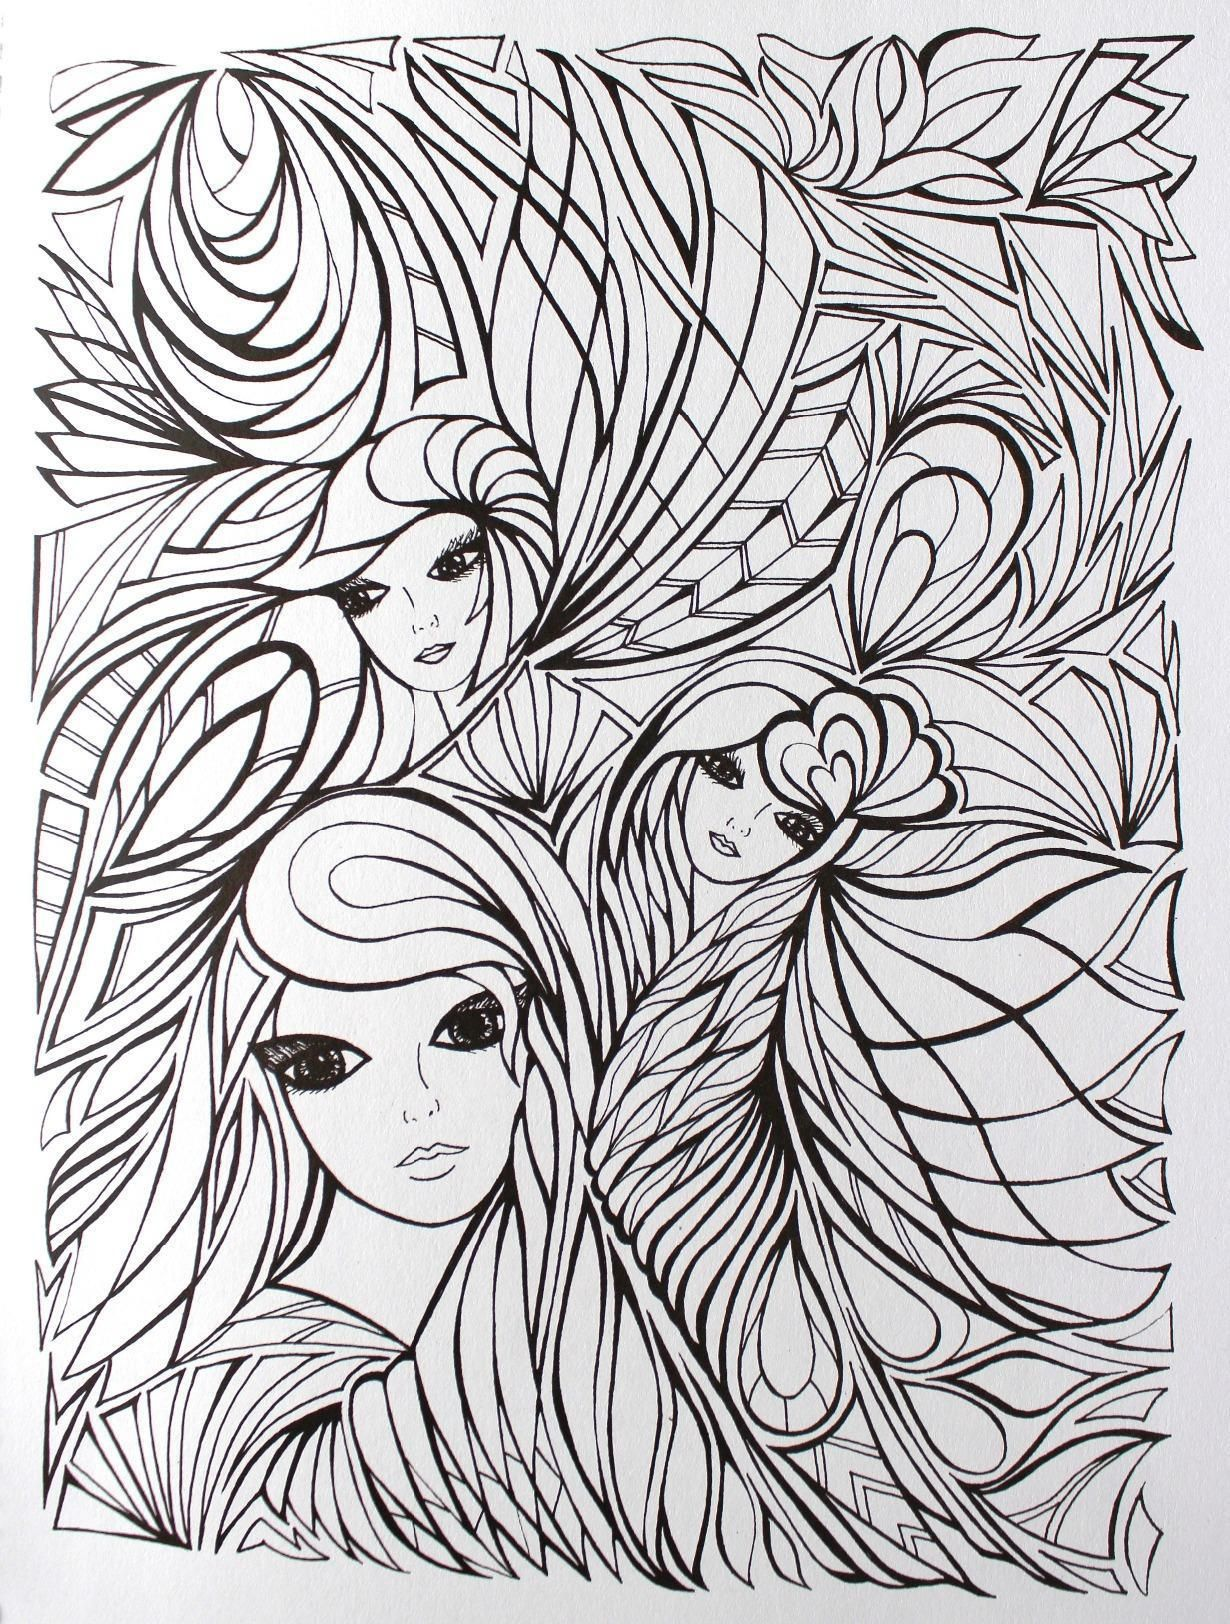 Frozen coloring pages amazon - Creative Haven Fanciful Faces Coloring Book Creative Haven Coloring Books Miryam Adatto